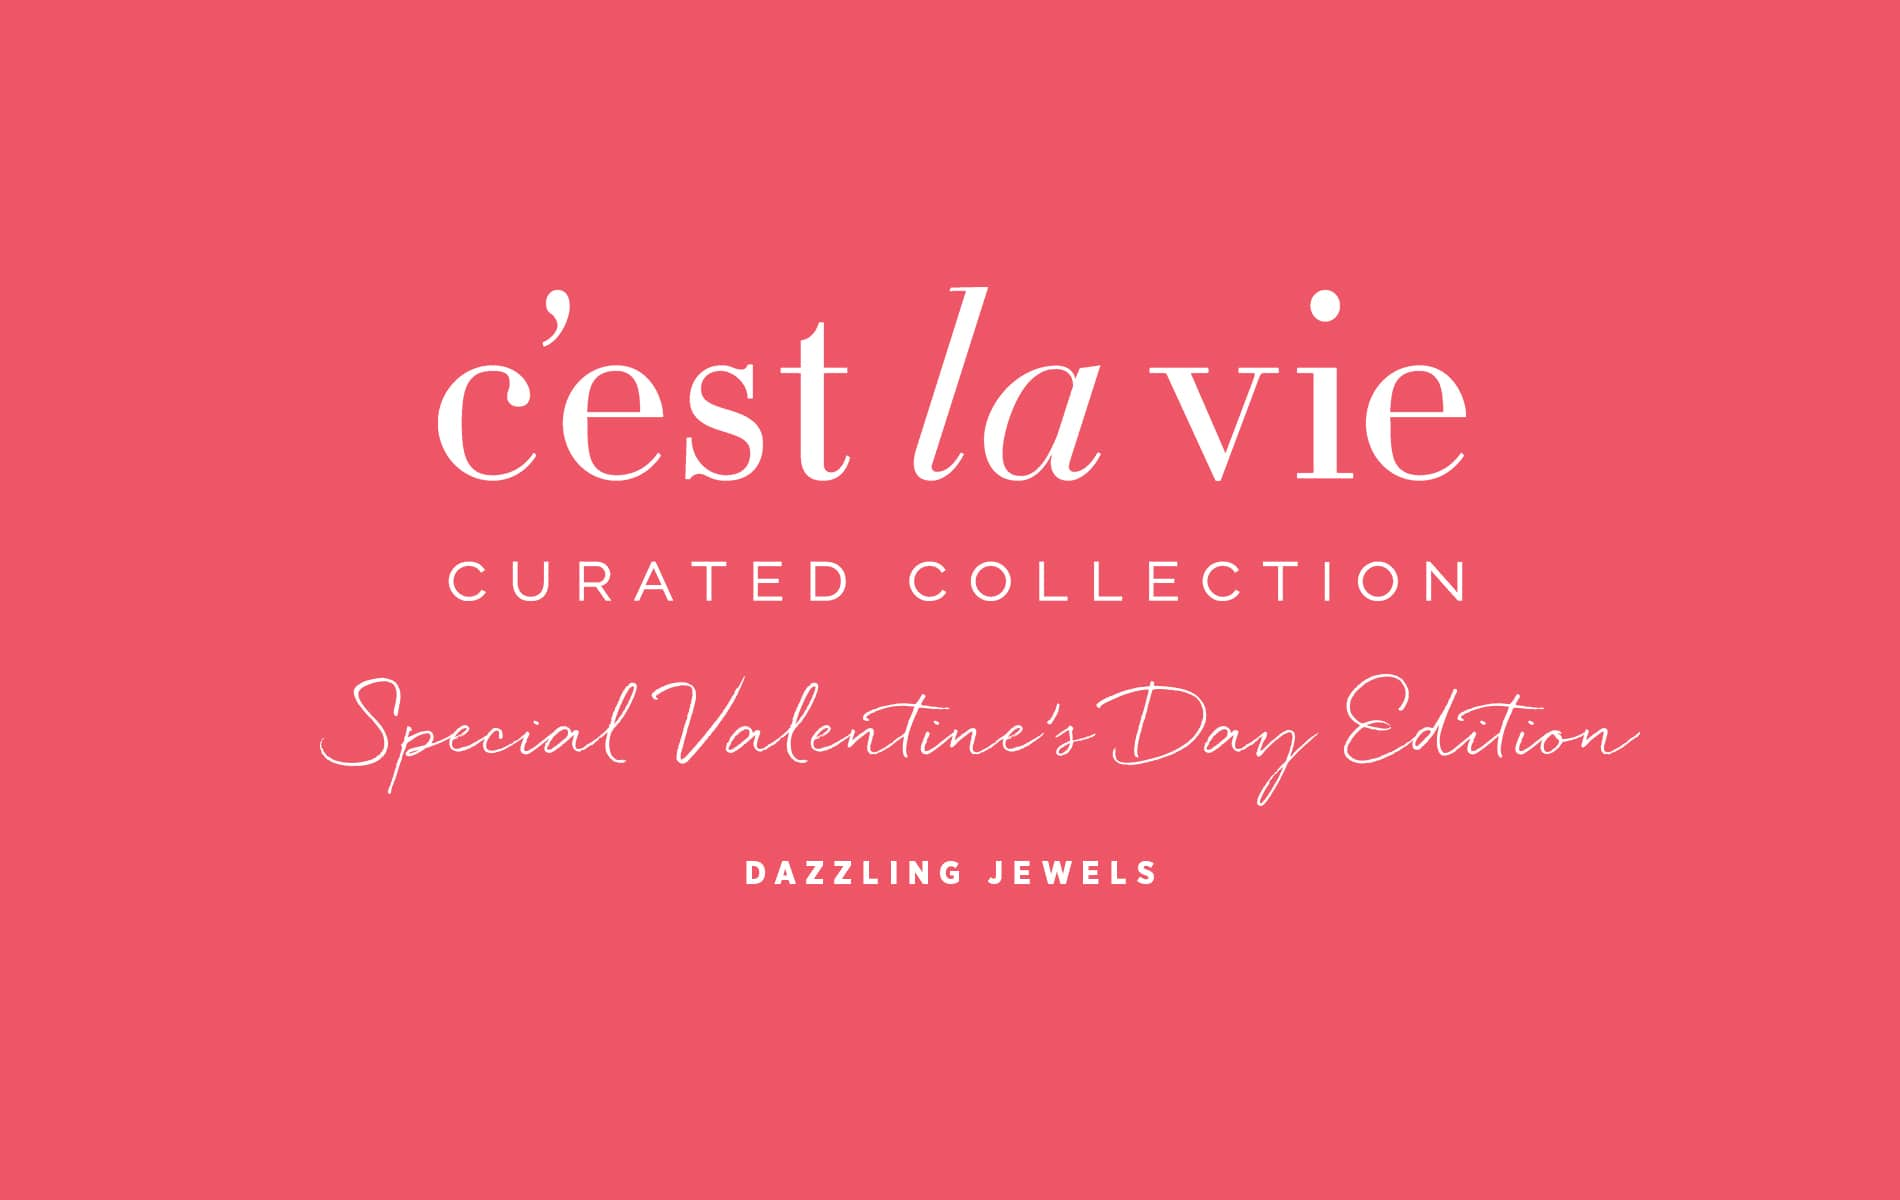 VIE Magazine Destination Travel Cest la VIE Special Valentine's Day Edition Dazzling Jewels